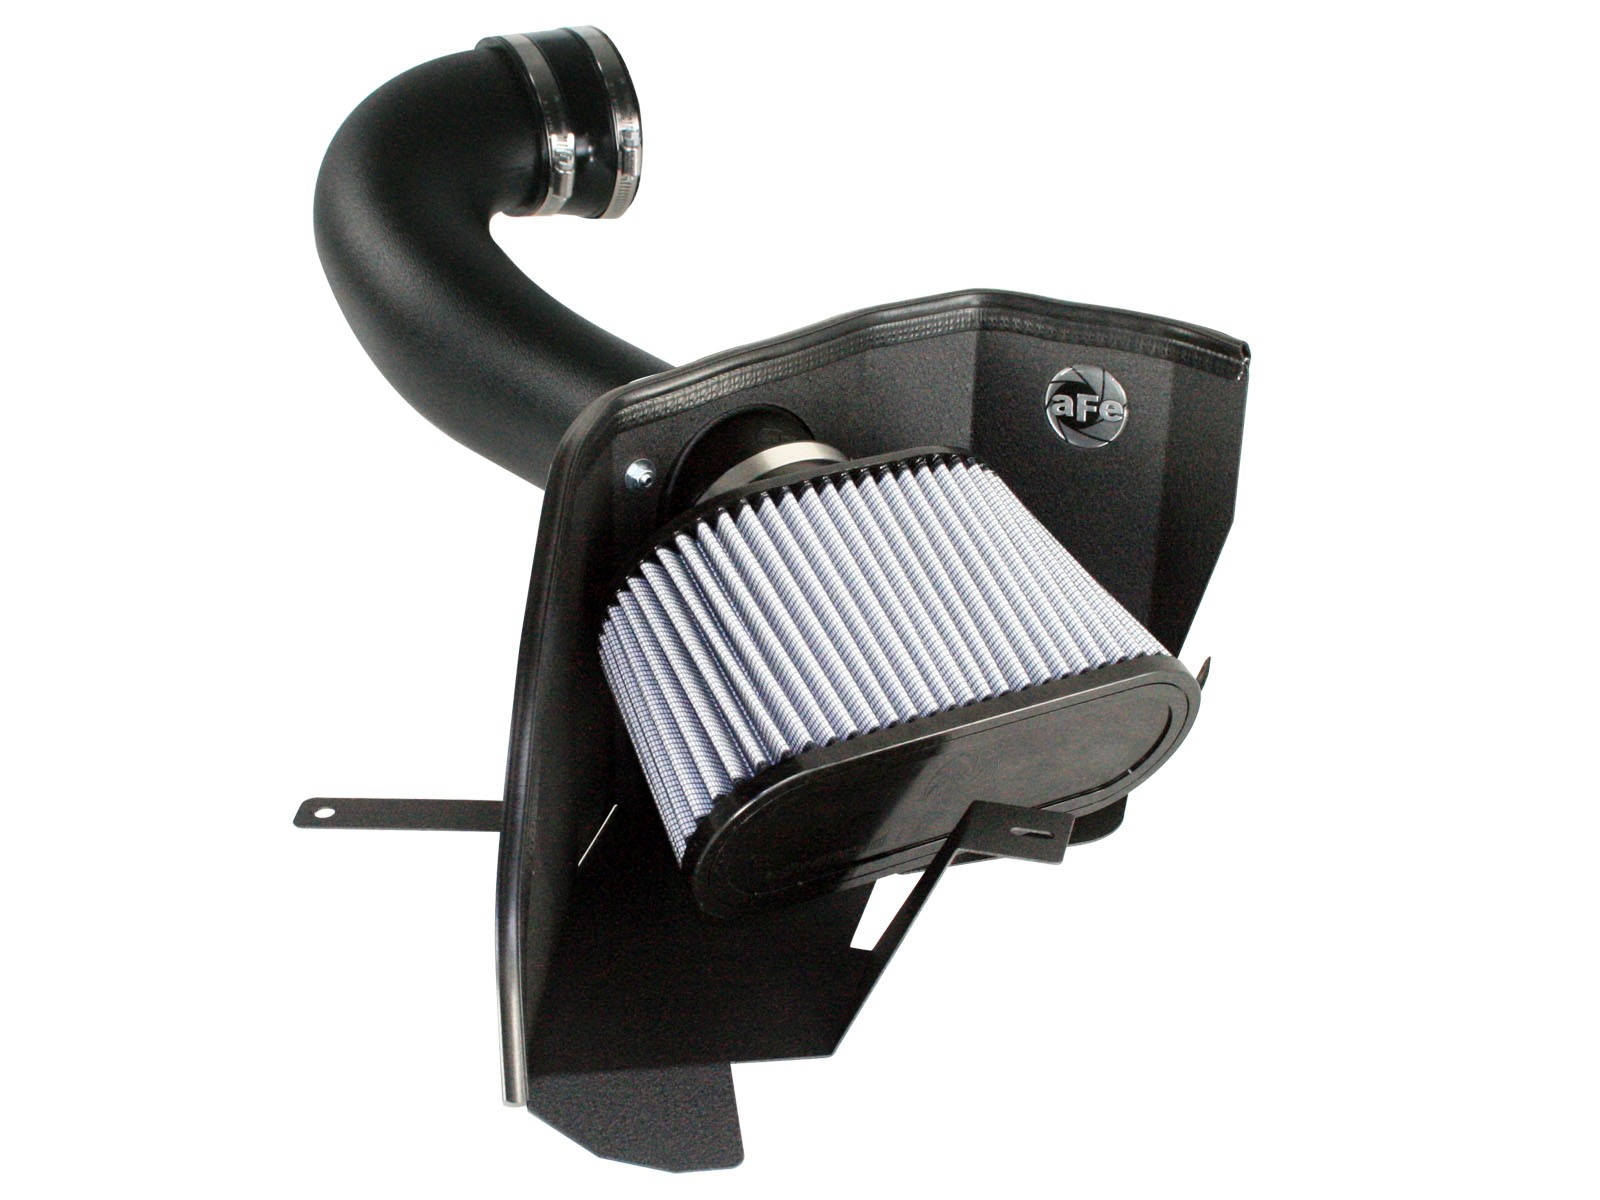 aFe POWER 51-10293 Magnum FORCE Stage-2 Pro DRY S Cold Air Intake System